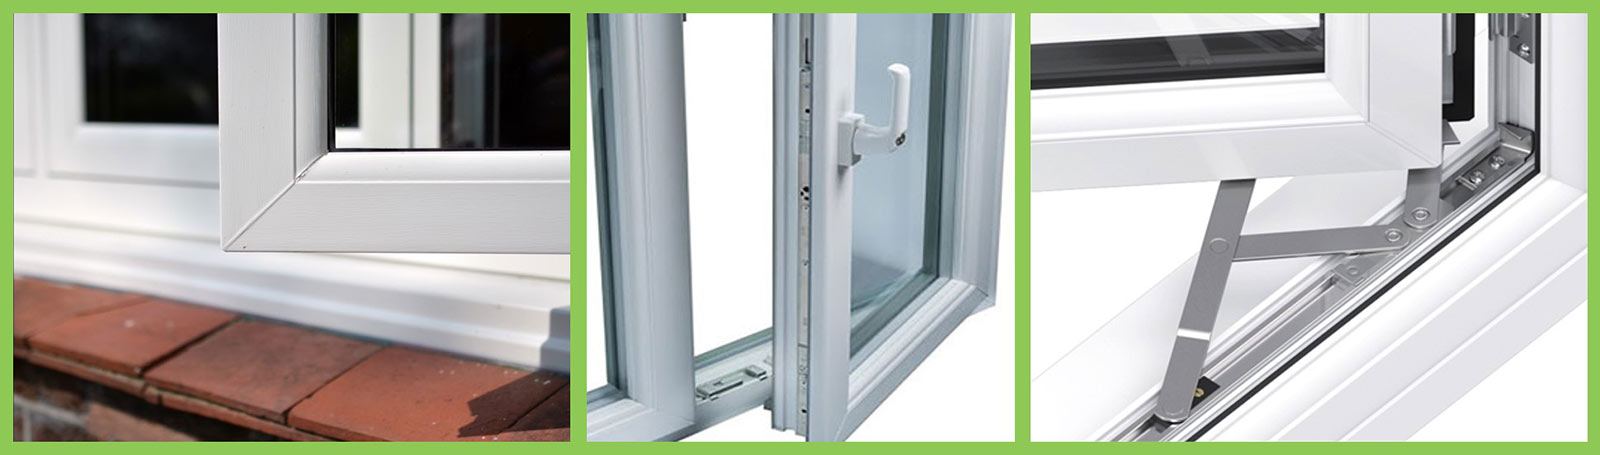 Southgate windows trade upvc french windows bridgwater for Upvc french doors bristol